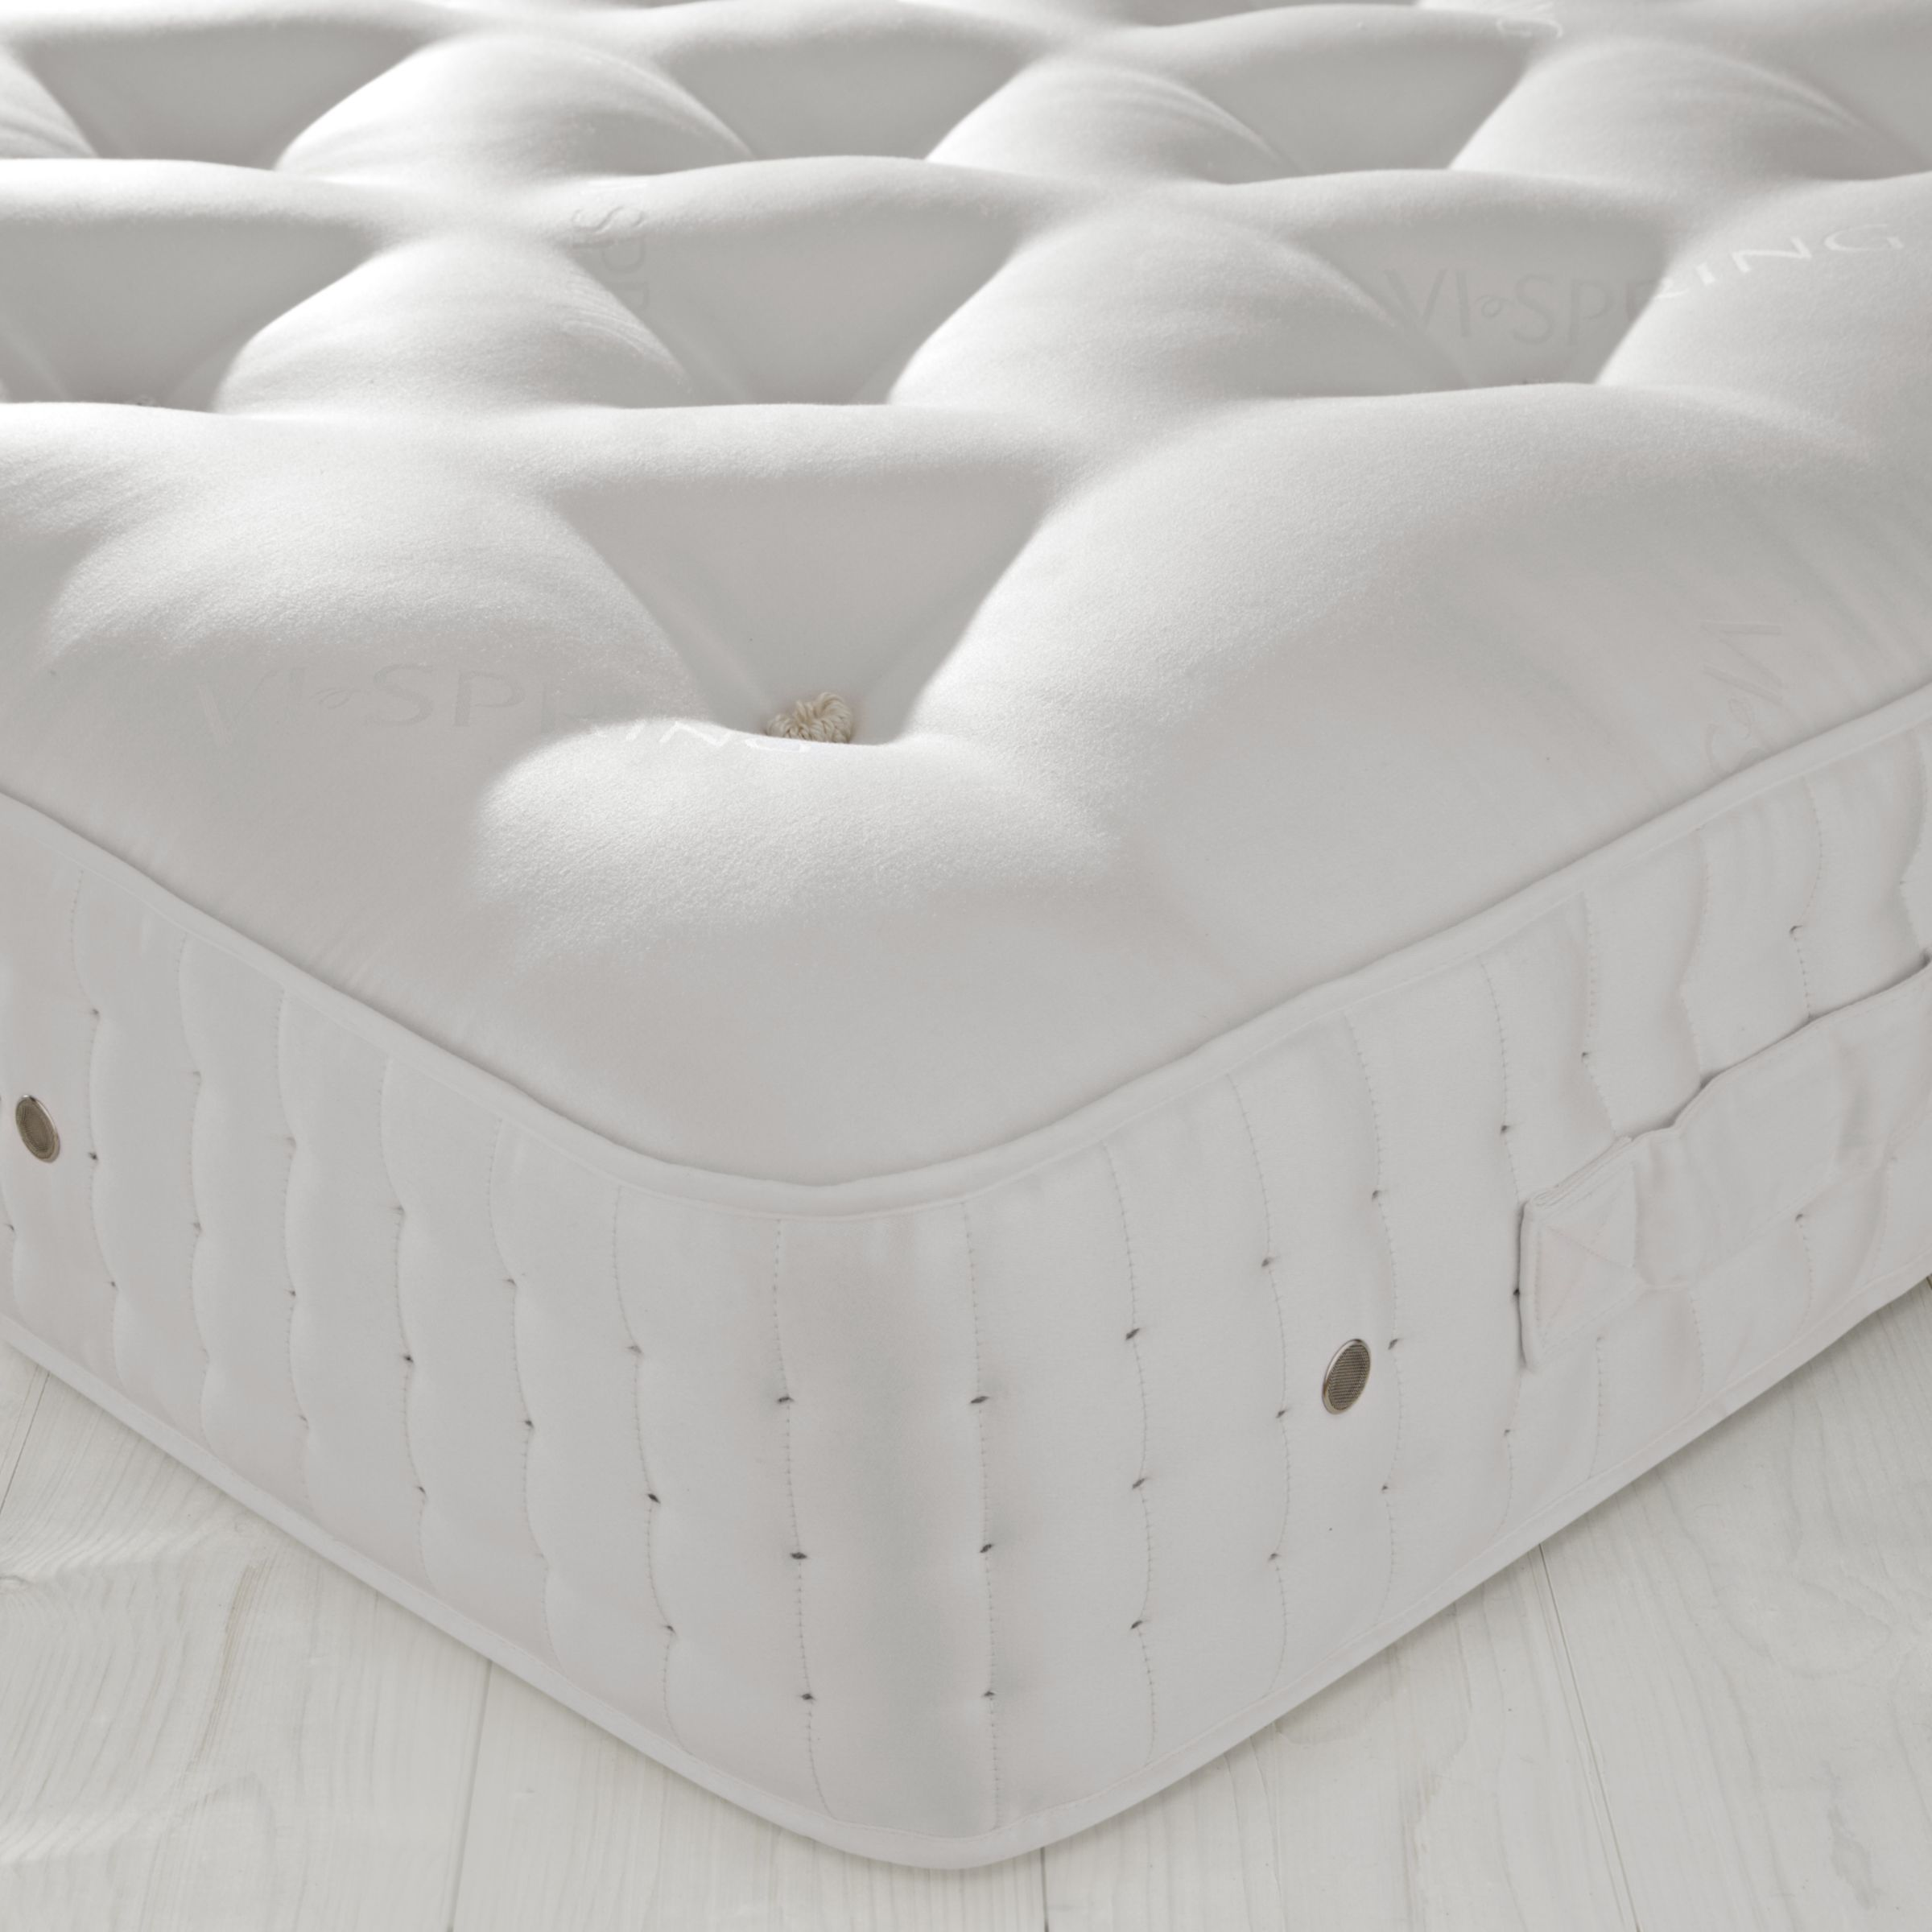 Vi-Spring Stowe Mattress, Kingsize